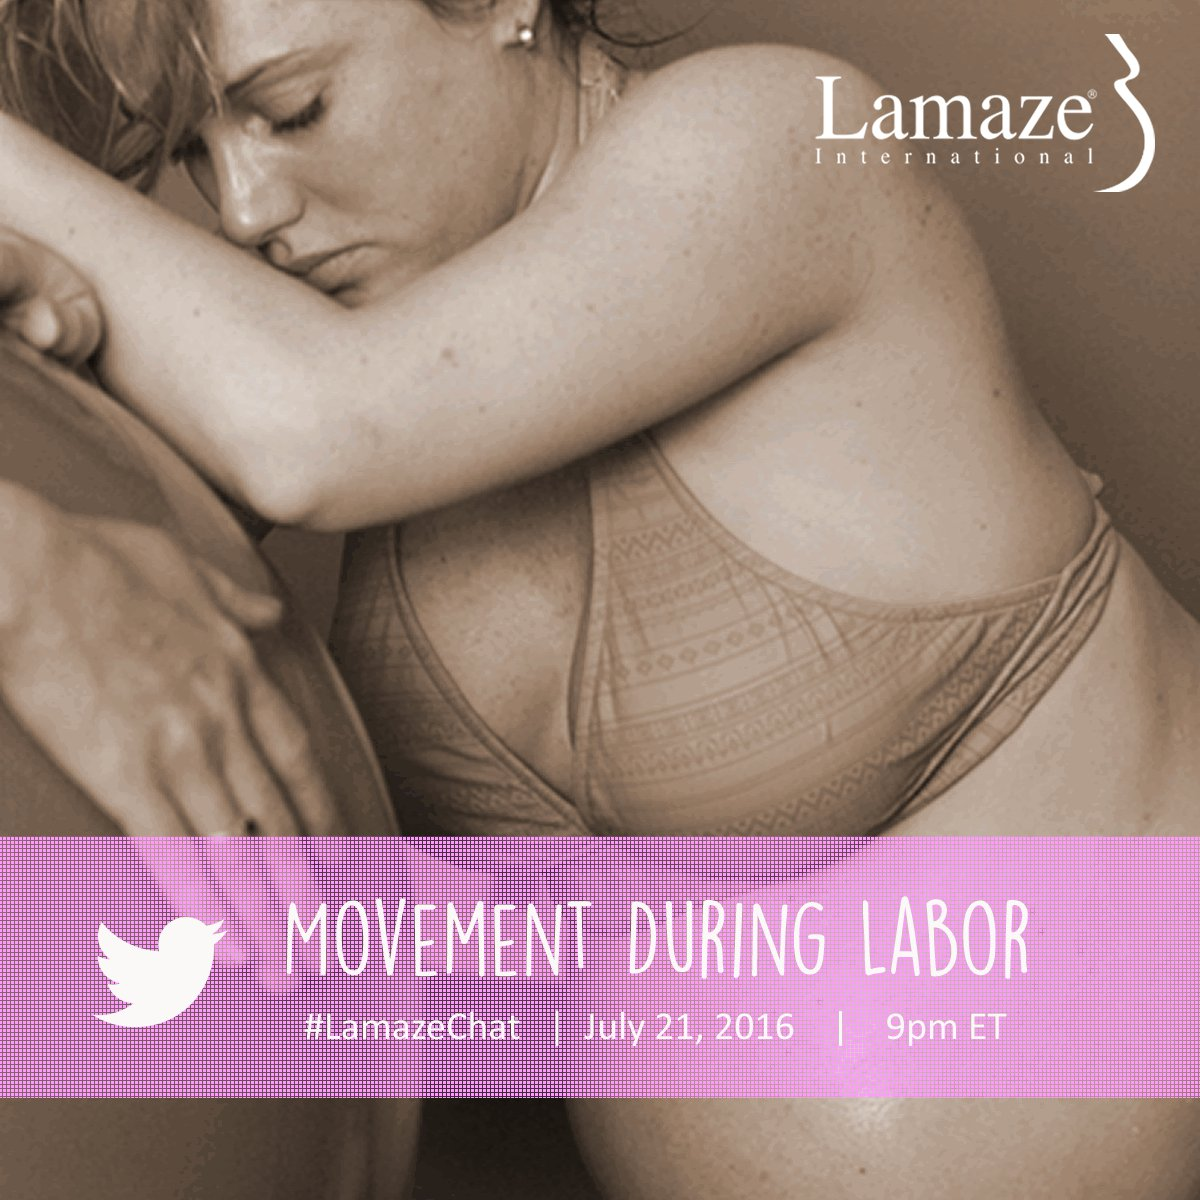 Please share! See you next Thursday, July 21, for a #LamazeChat on movement during labor. 9pm ET. https://t.co/KbqFHNpNt7